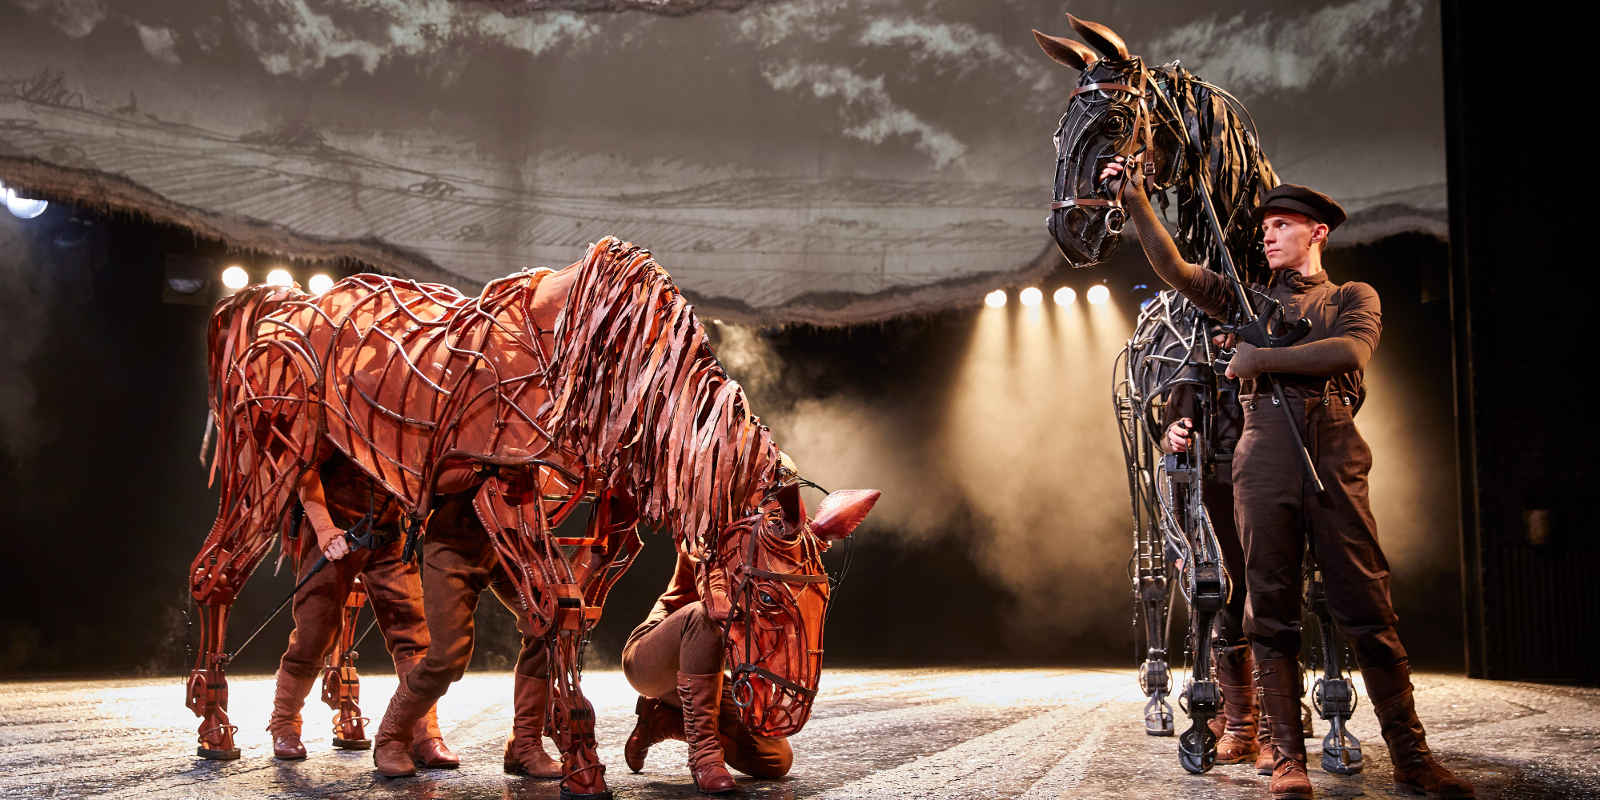 Horse puppets and their puppeteers on War Horse stage version